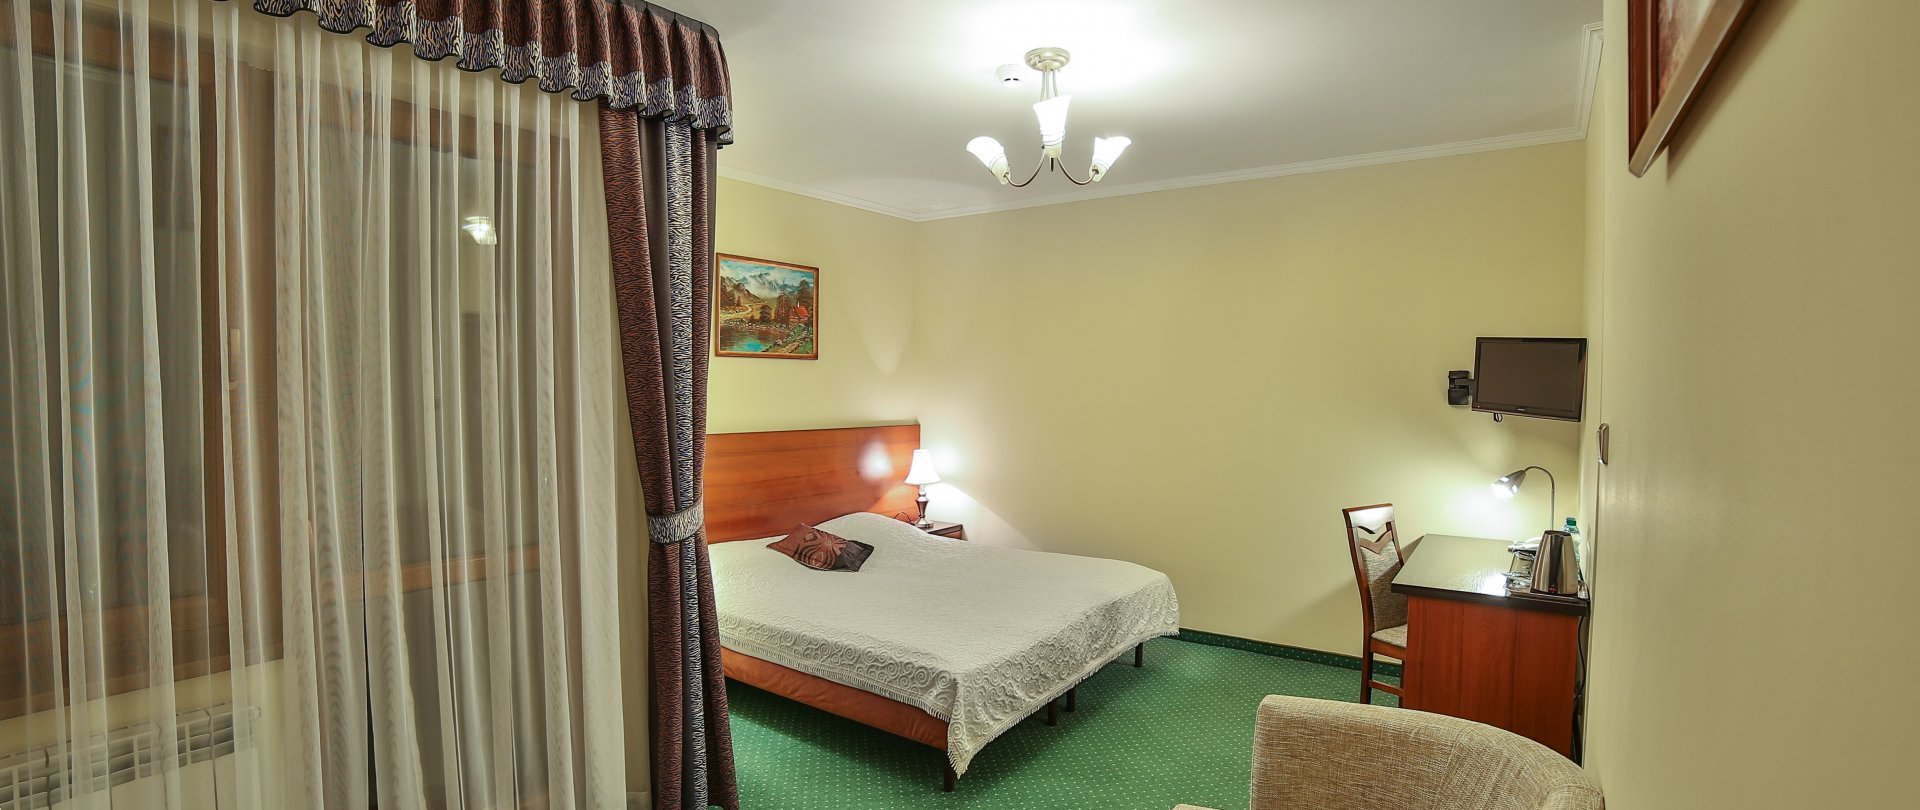 Deluxe double room with Queen Size bed